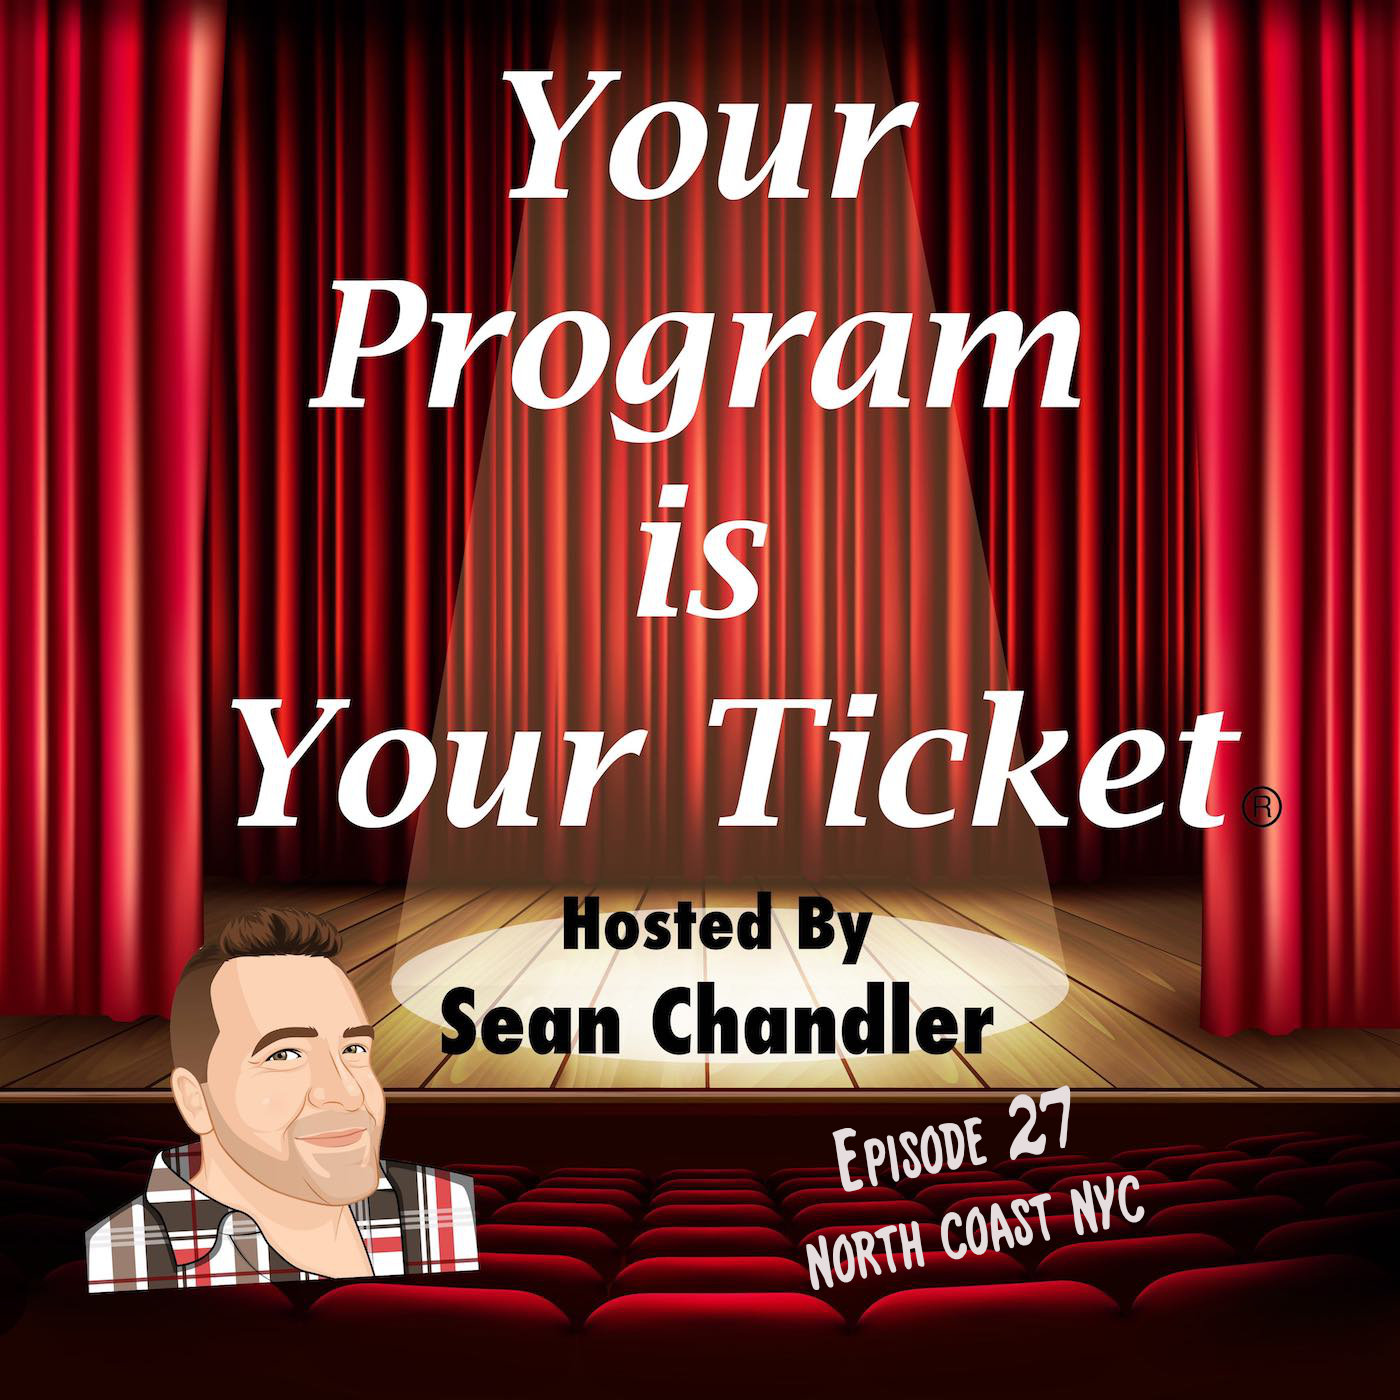 Ep 27 Your Program Is Your Ticket Logo Registered Trademark